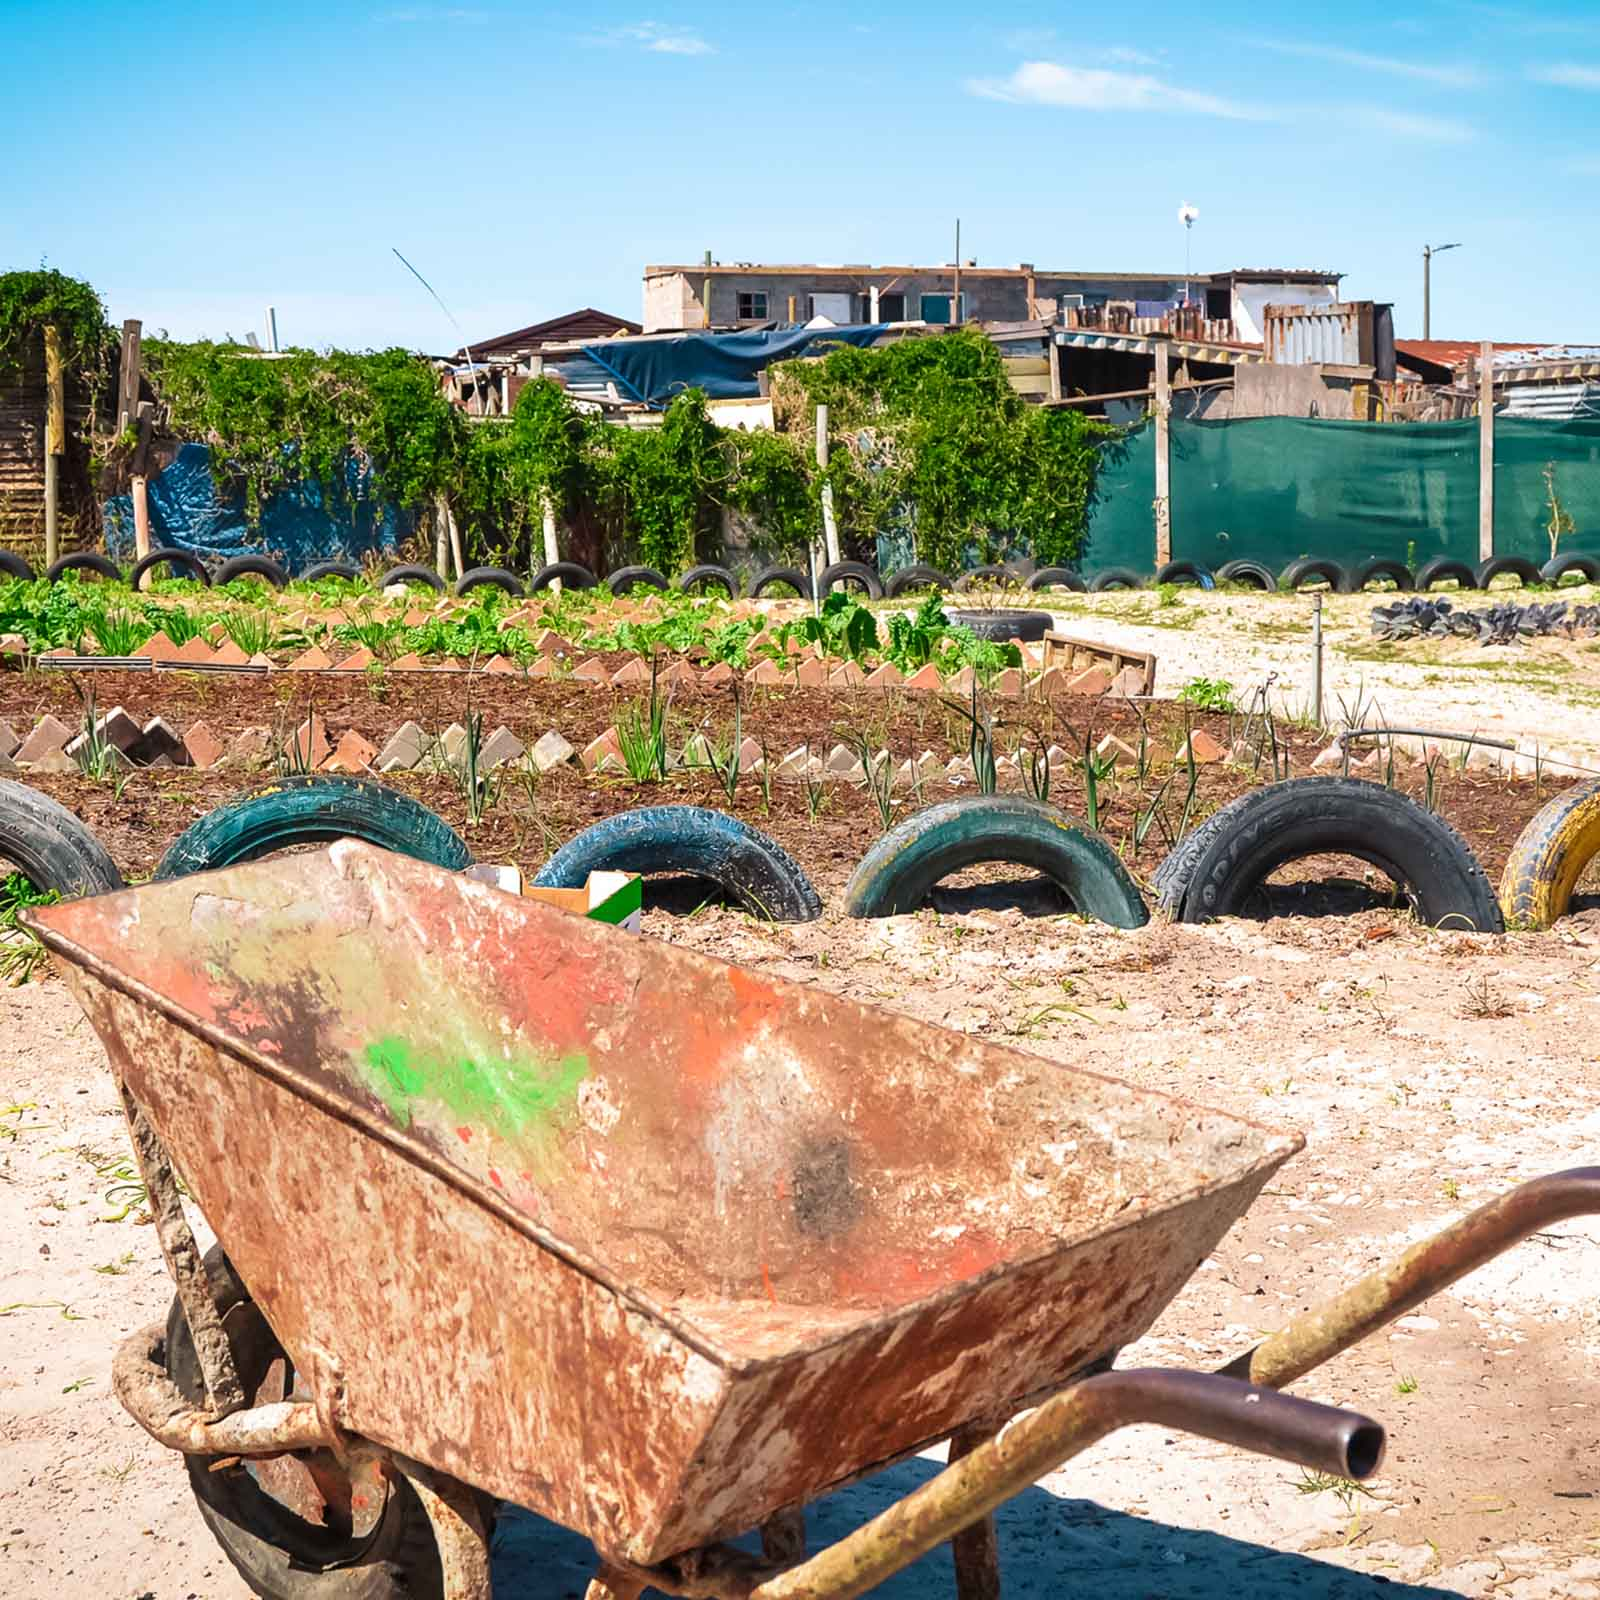 a rusty wheelbarrow standing before an urban farm in cape town where urban vegetable farming is needed to feed people at the soup kitchen